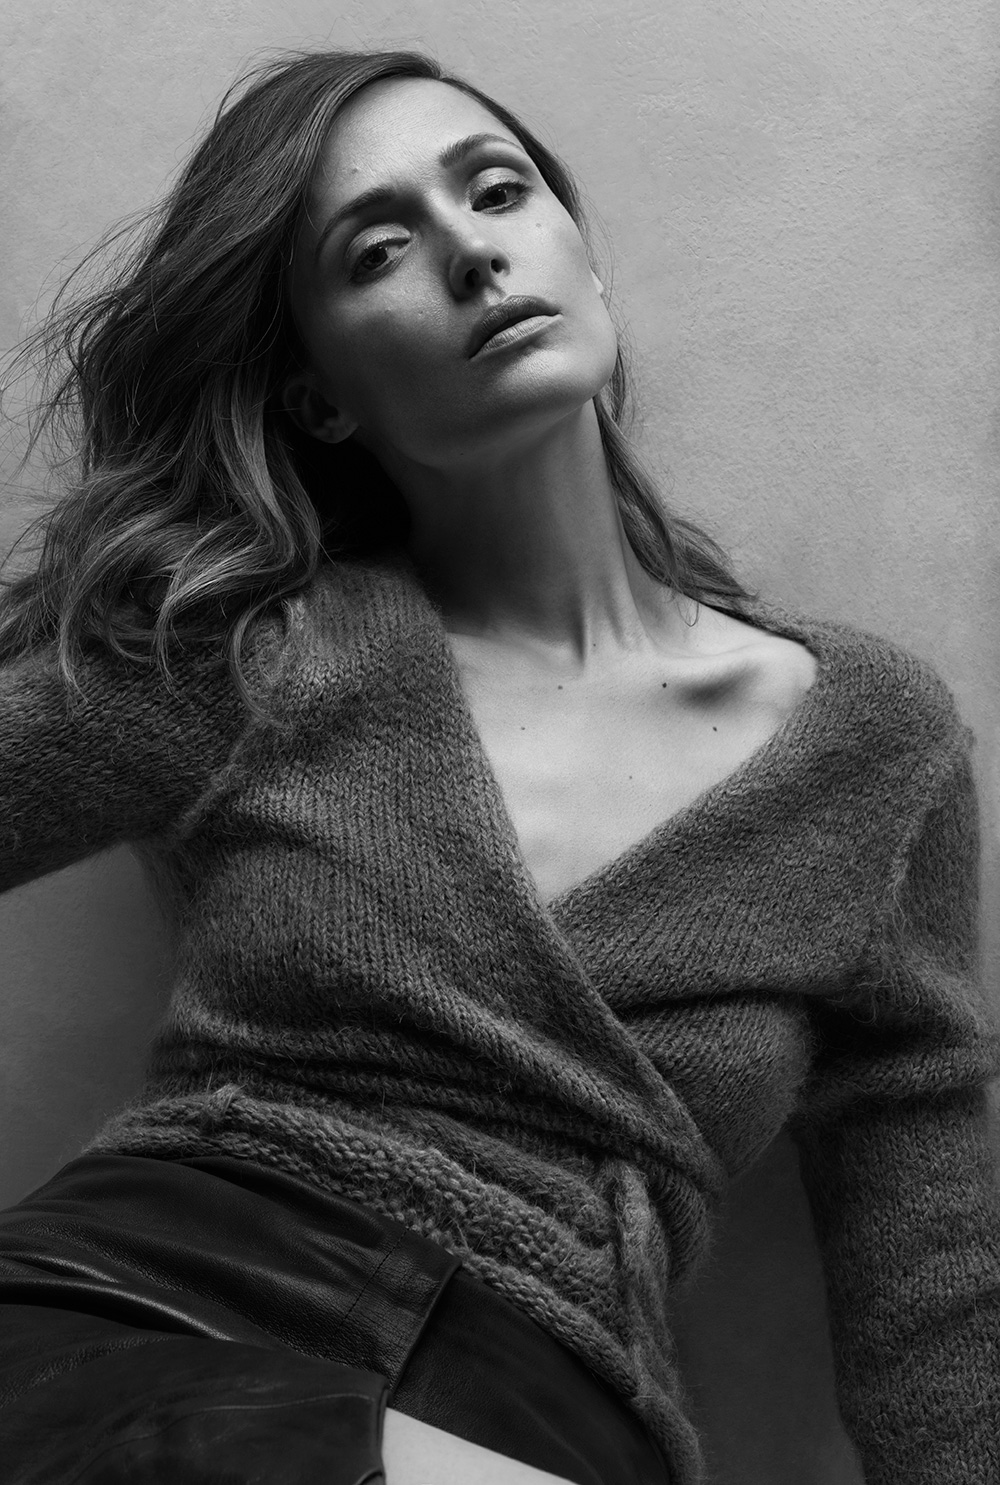 Image of Rose Byrne, black and white photo by Stefani Pappas.